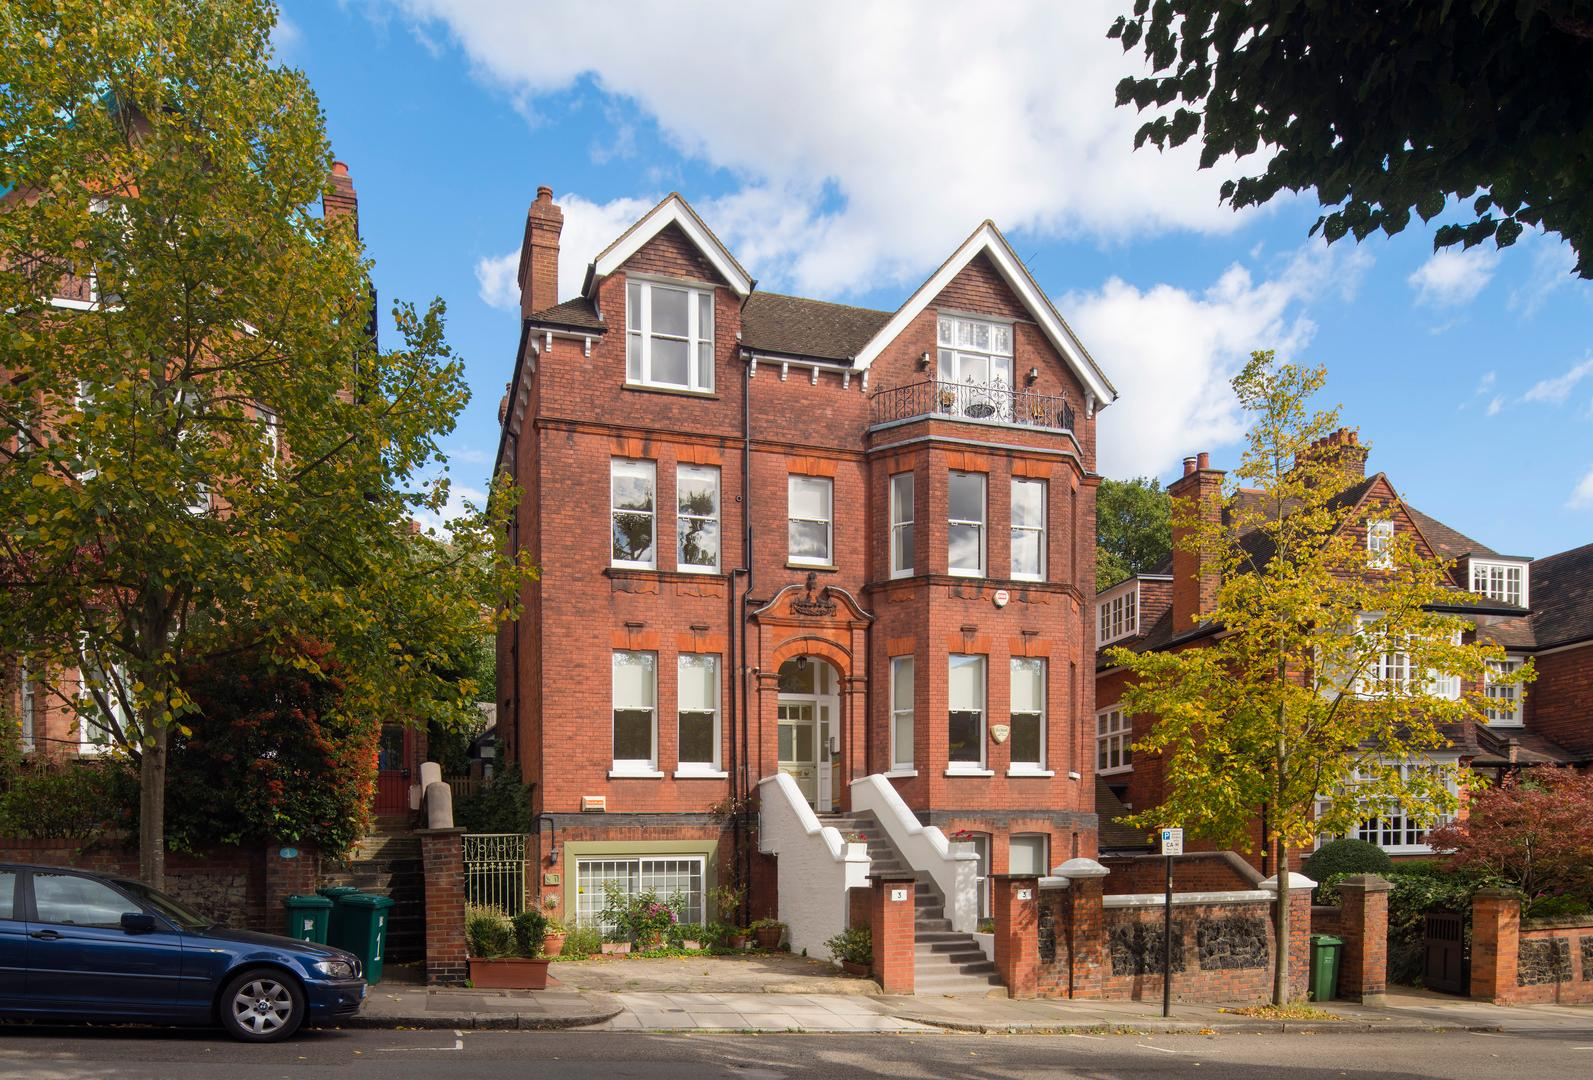 Property Image 2 - Impressive Hampstead Home with Stylish Interior by Tube